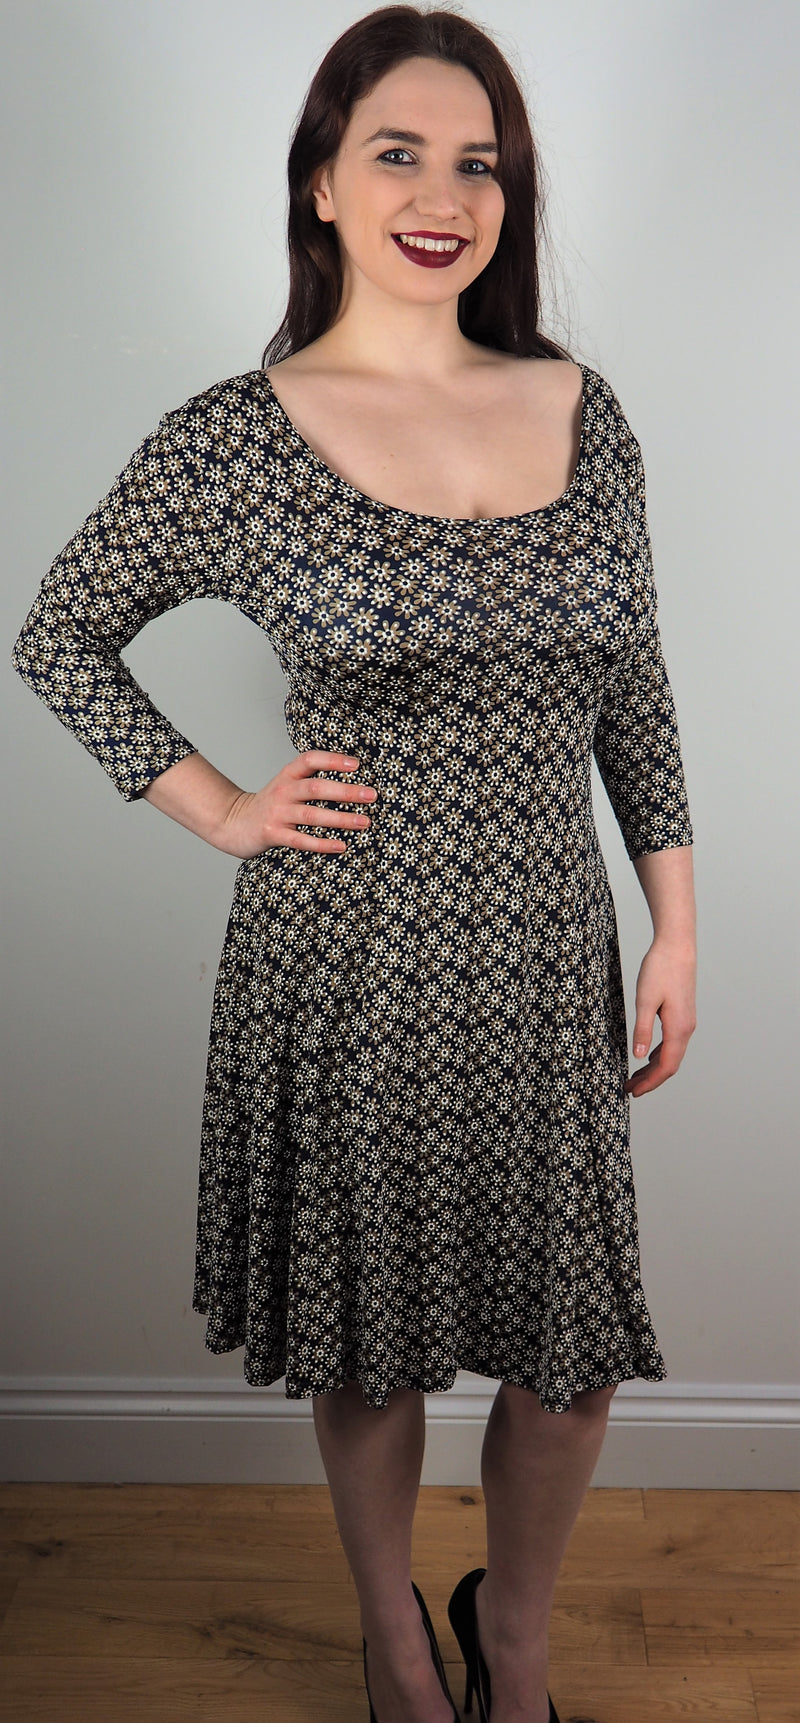 Husen Moda Navy/brown print dress